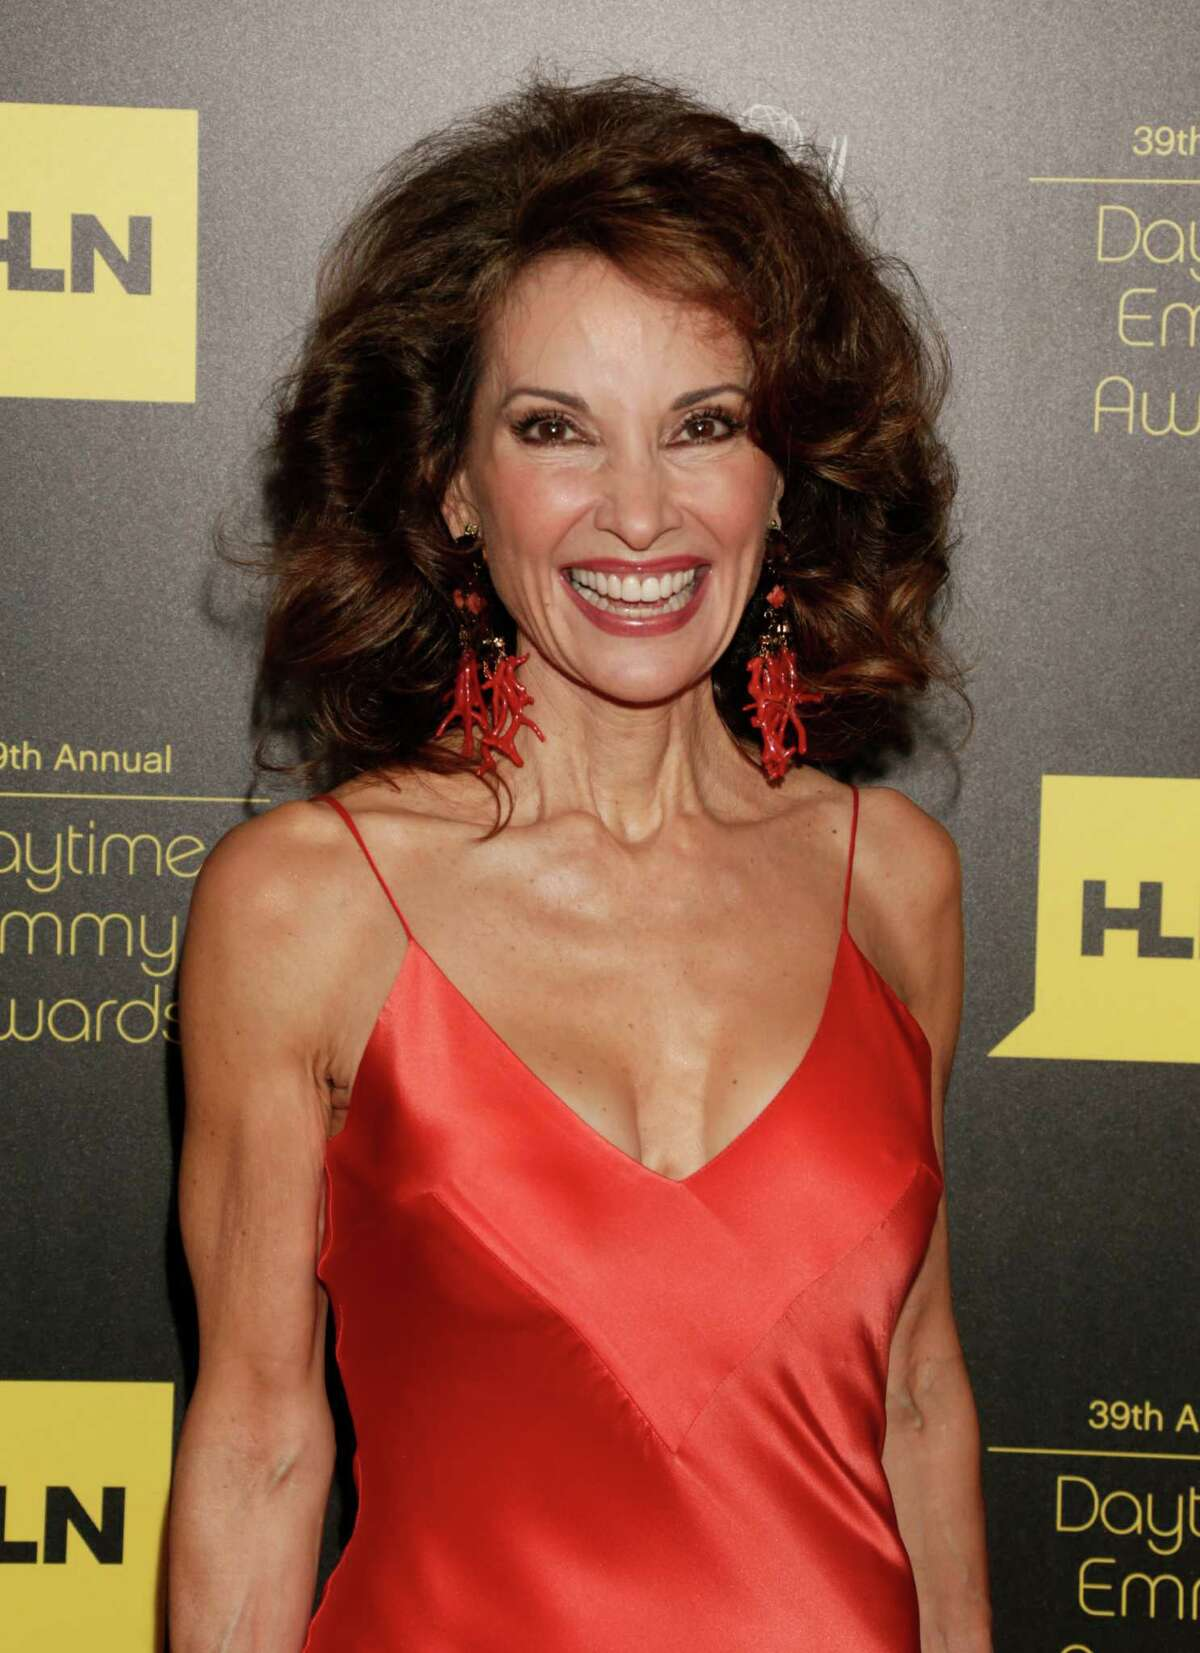 Susan Lucci arrives at the 39th Annual Daytime Emmy Awards at the Beverly Hilton Hotel on Saturday, June 23, 2012, in Beverly Hills, Calif. (Photo by Todd Williamson/Invision/AP)